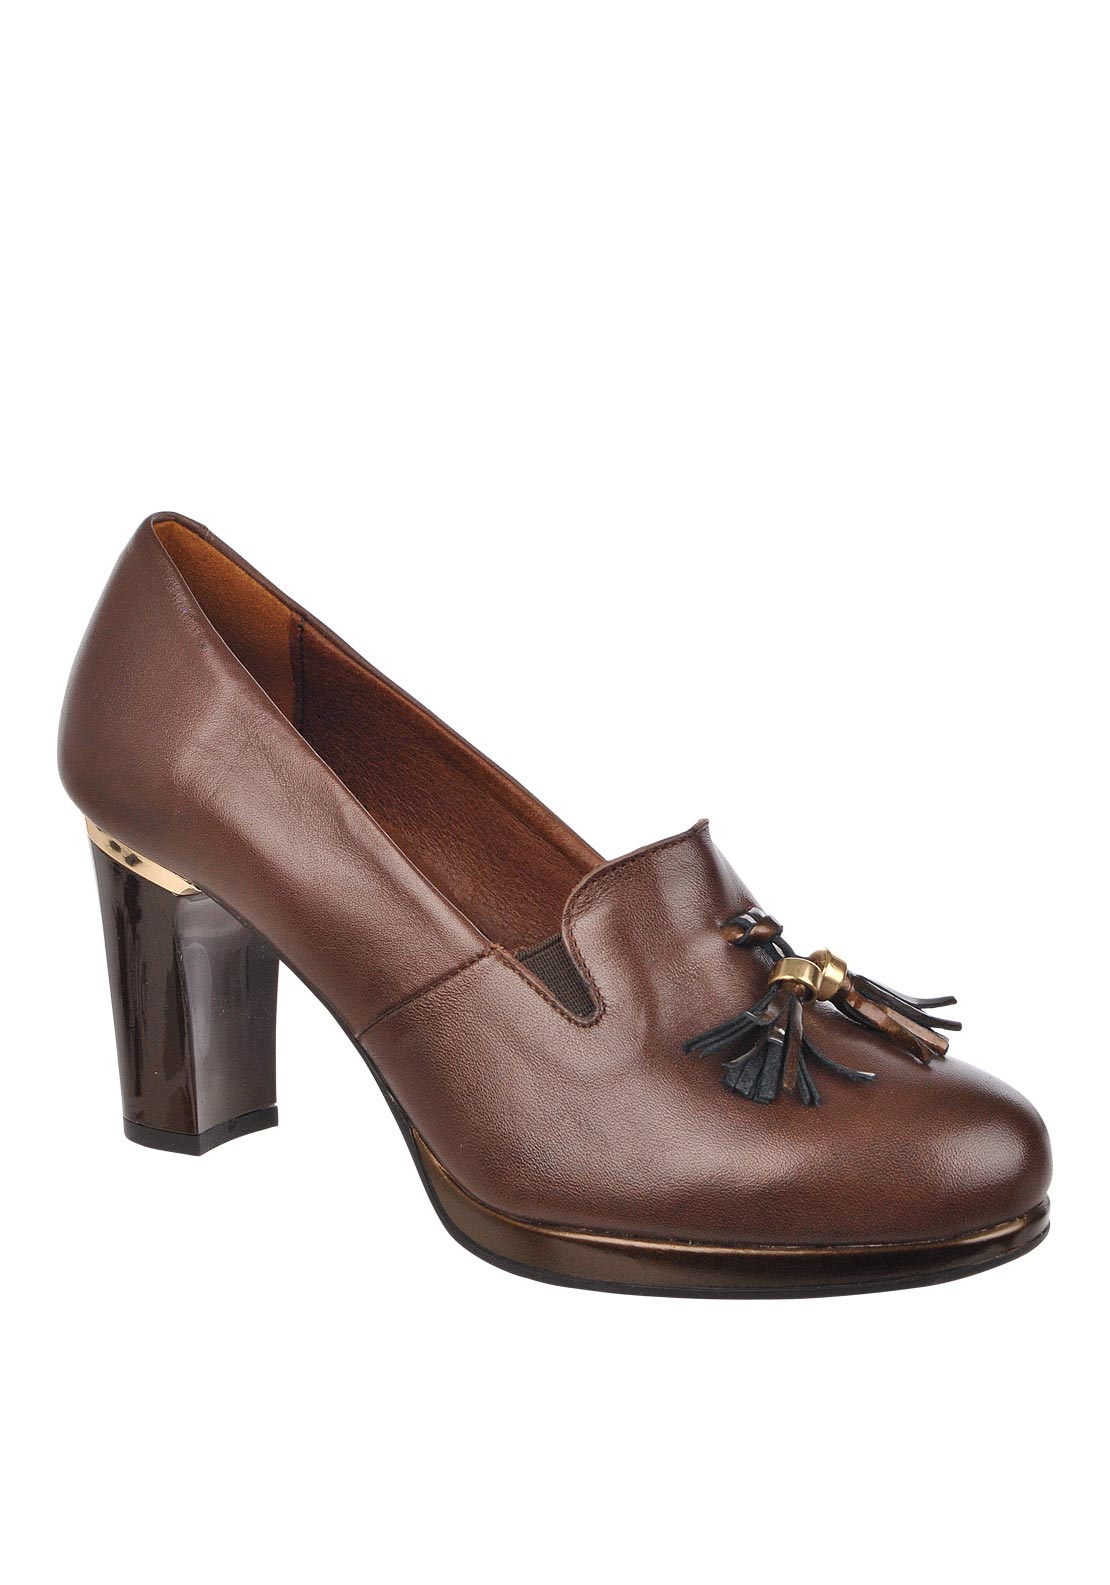 Pitillos Tassle Leather Block Heel Shoe, Mocha